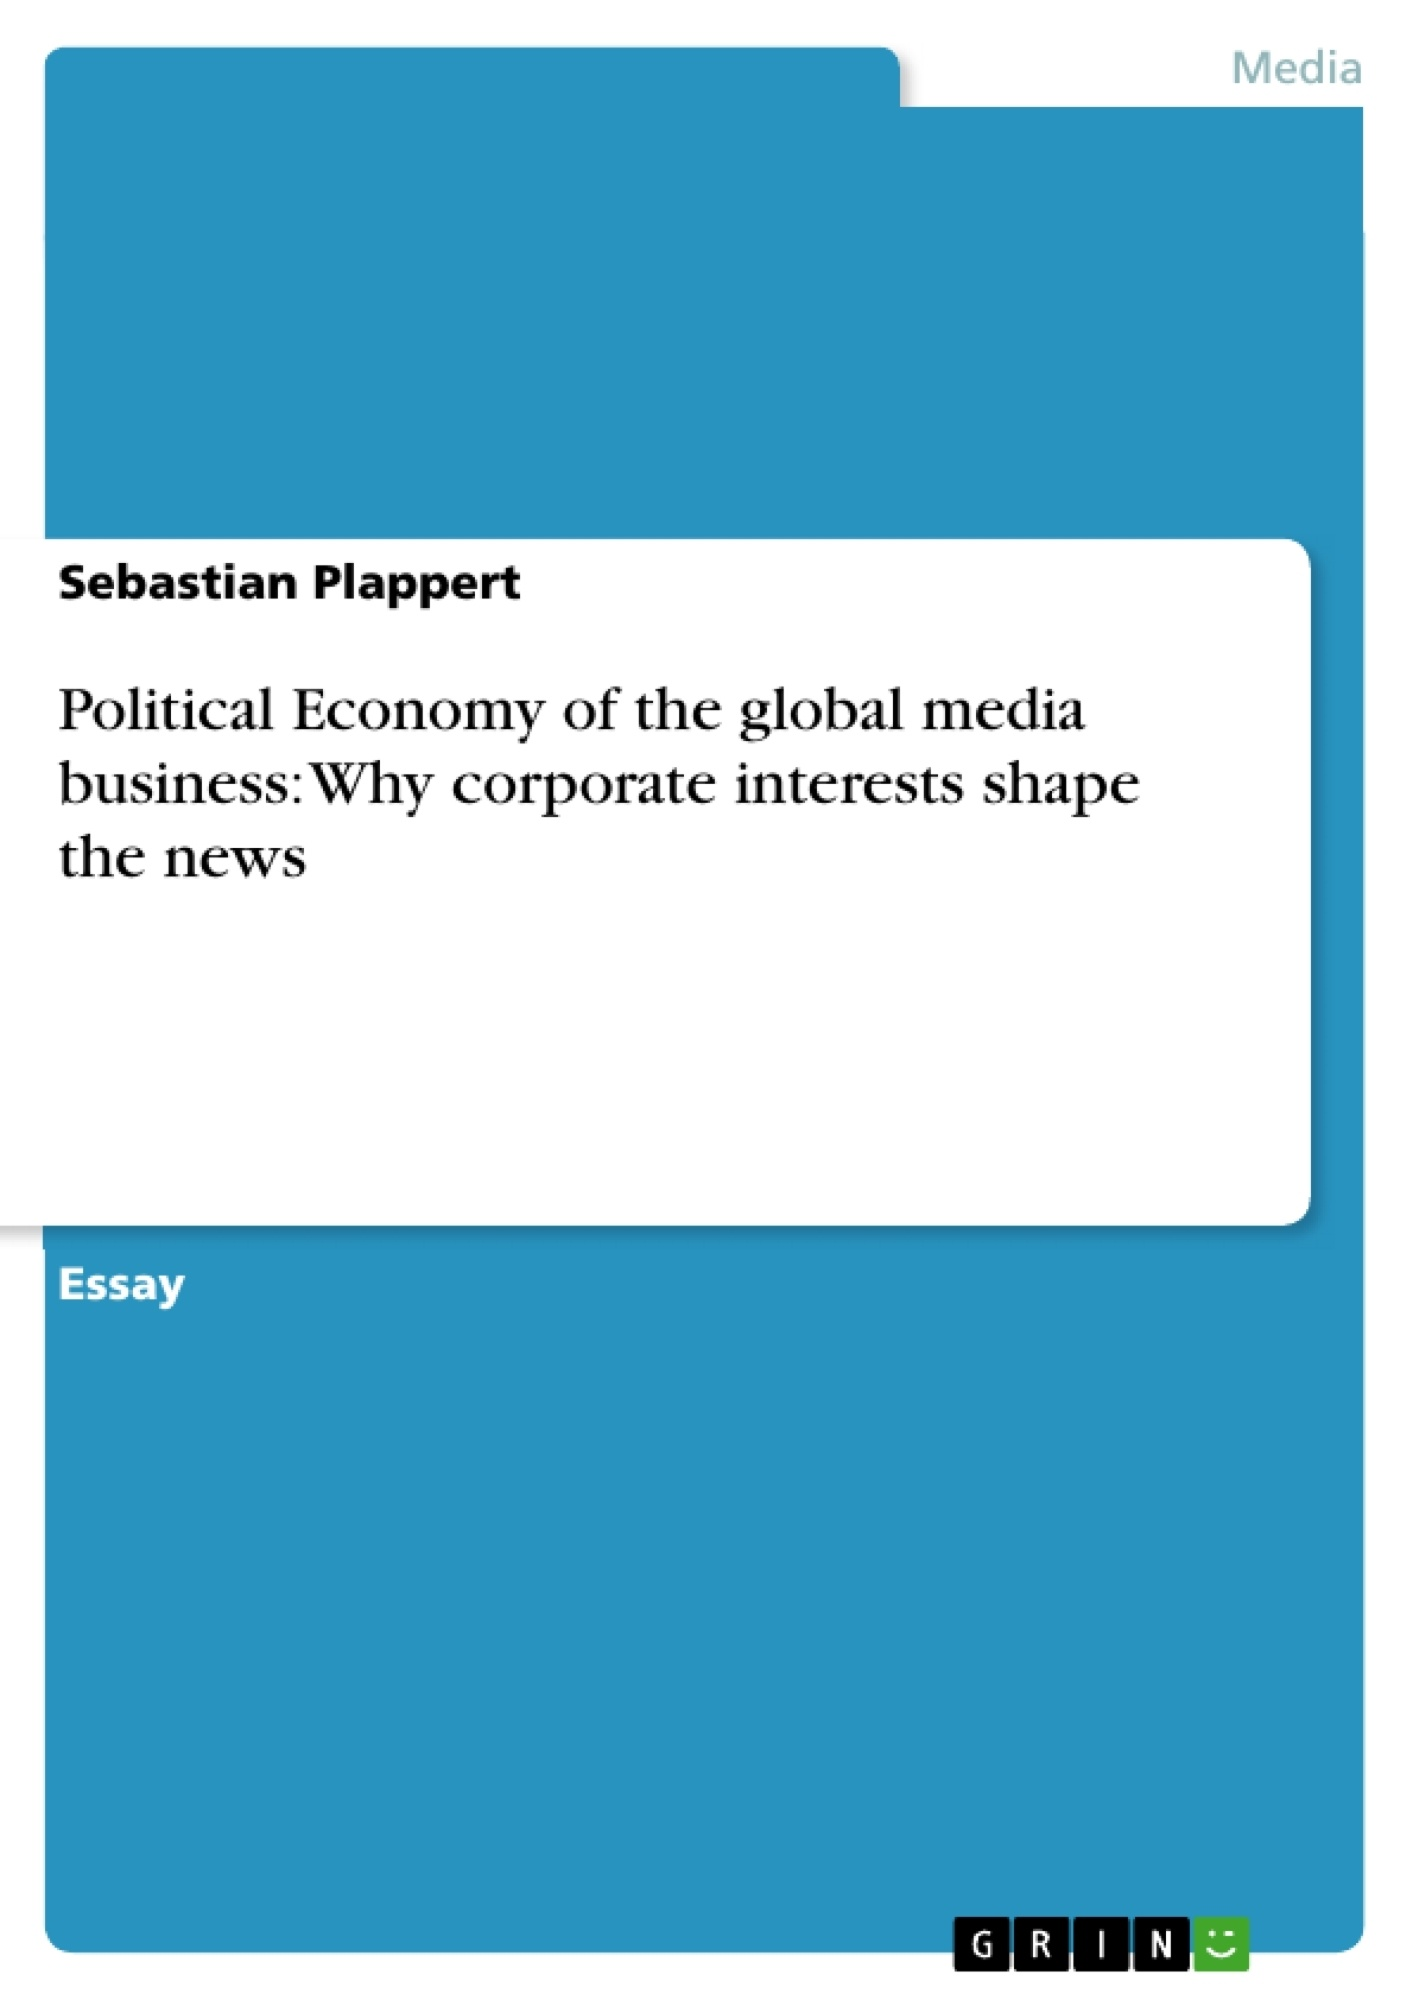 Title: Political Economy of the global media business: Why corporate interests shape the news